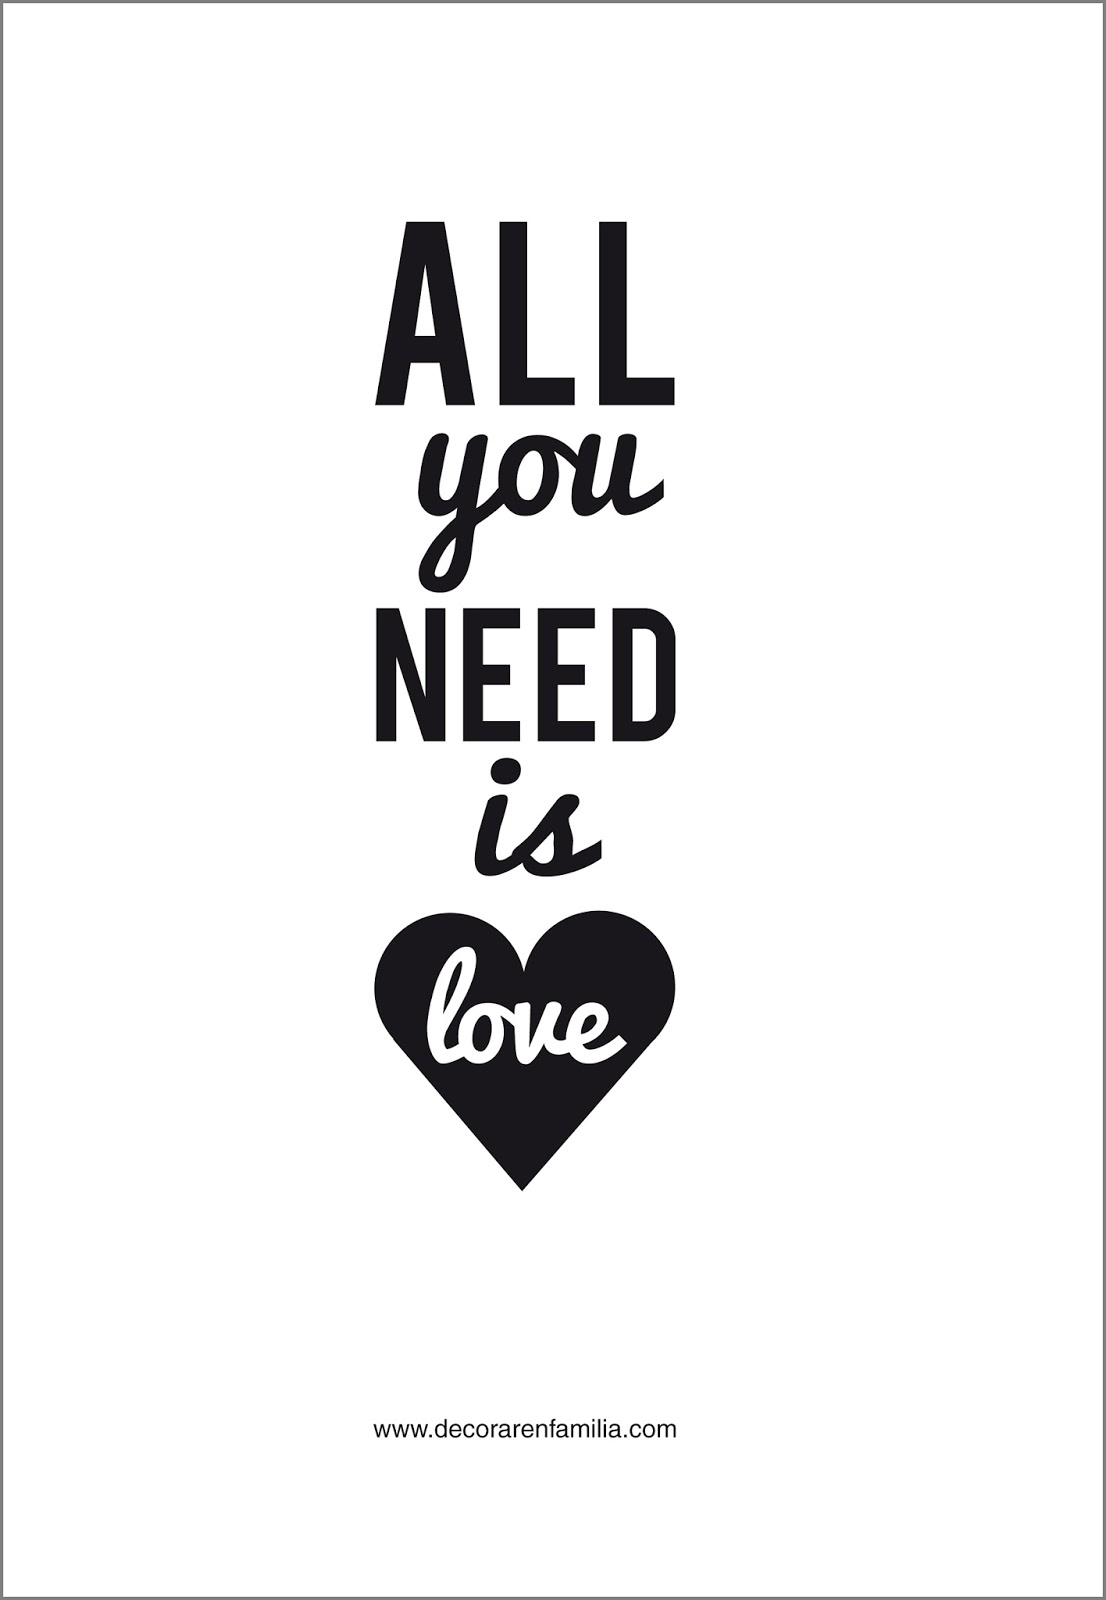 Decorar en familia: Lámina descargable All You Need Is Love4